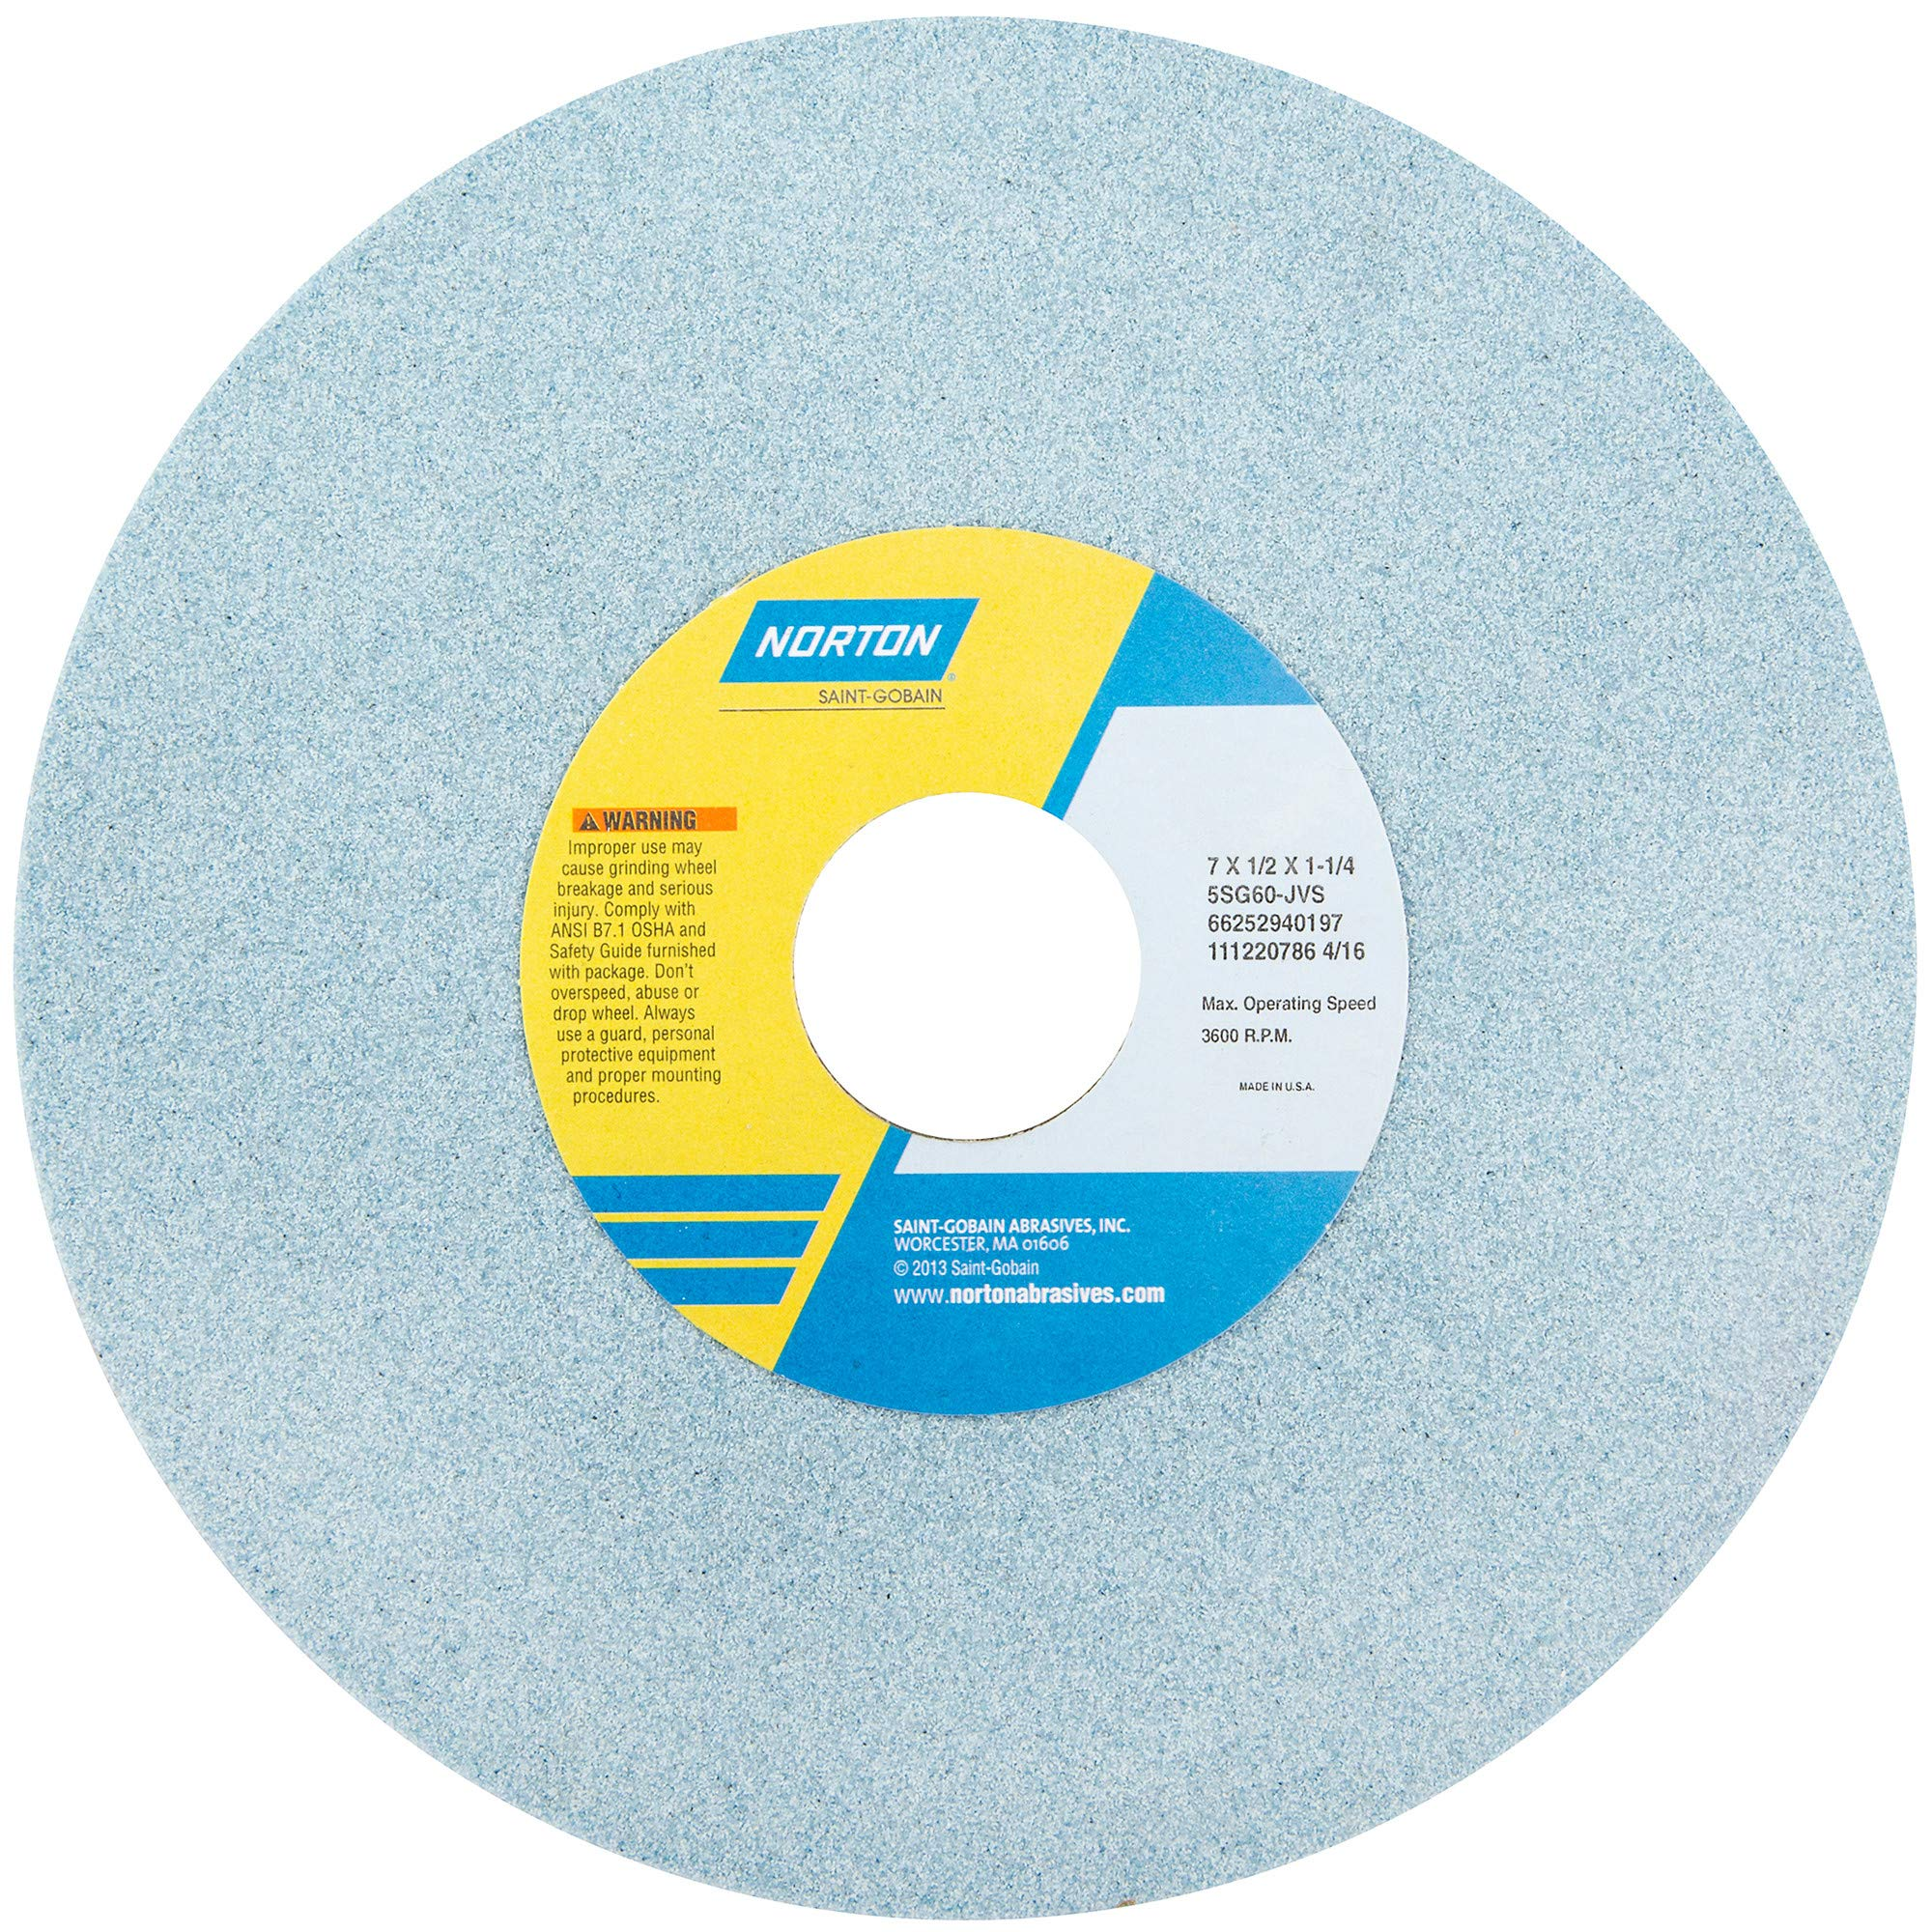 Norton 5SG60-IVS Type 01 Vitrified Straight Toolroom Grinding Wheel, Ceramic Alumina, 7'' Diameter x 1/2'' Width, 1-1/4'' Arbor, 60 Grit, Grade I, Blue (Pack of 1) by Norton Abrasives - St. Gobain